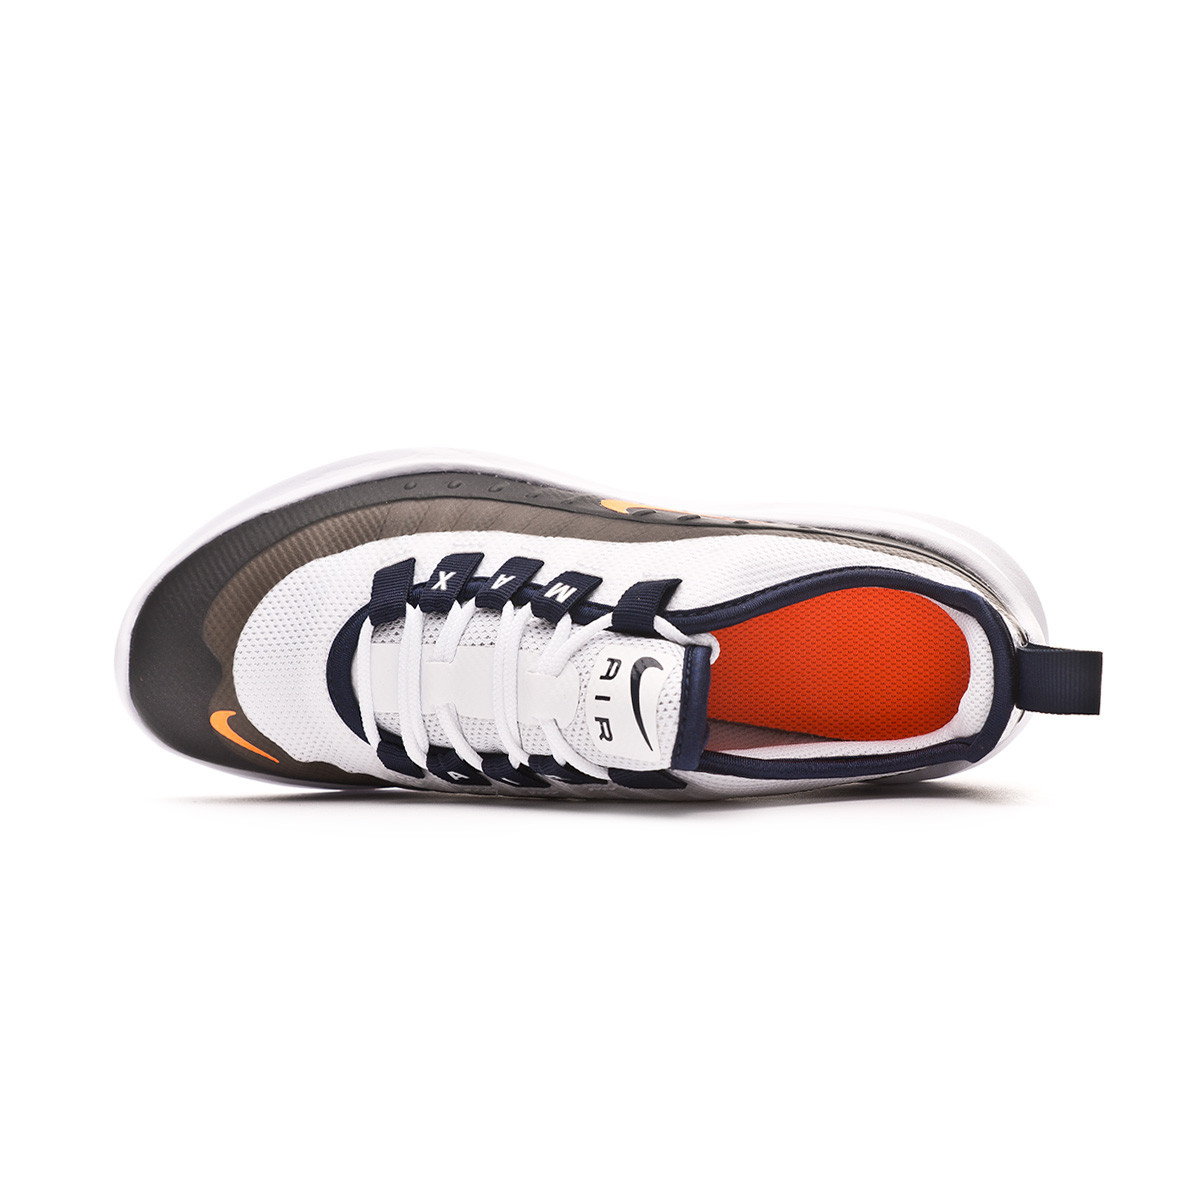 Relativamente petróleo por otra parte,  Trainers Nike Kids Air Max Axis White-Total orange-Obsidian - Football  store Fútbol Emotion